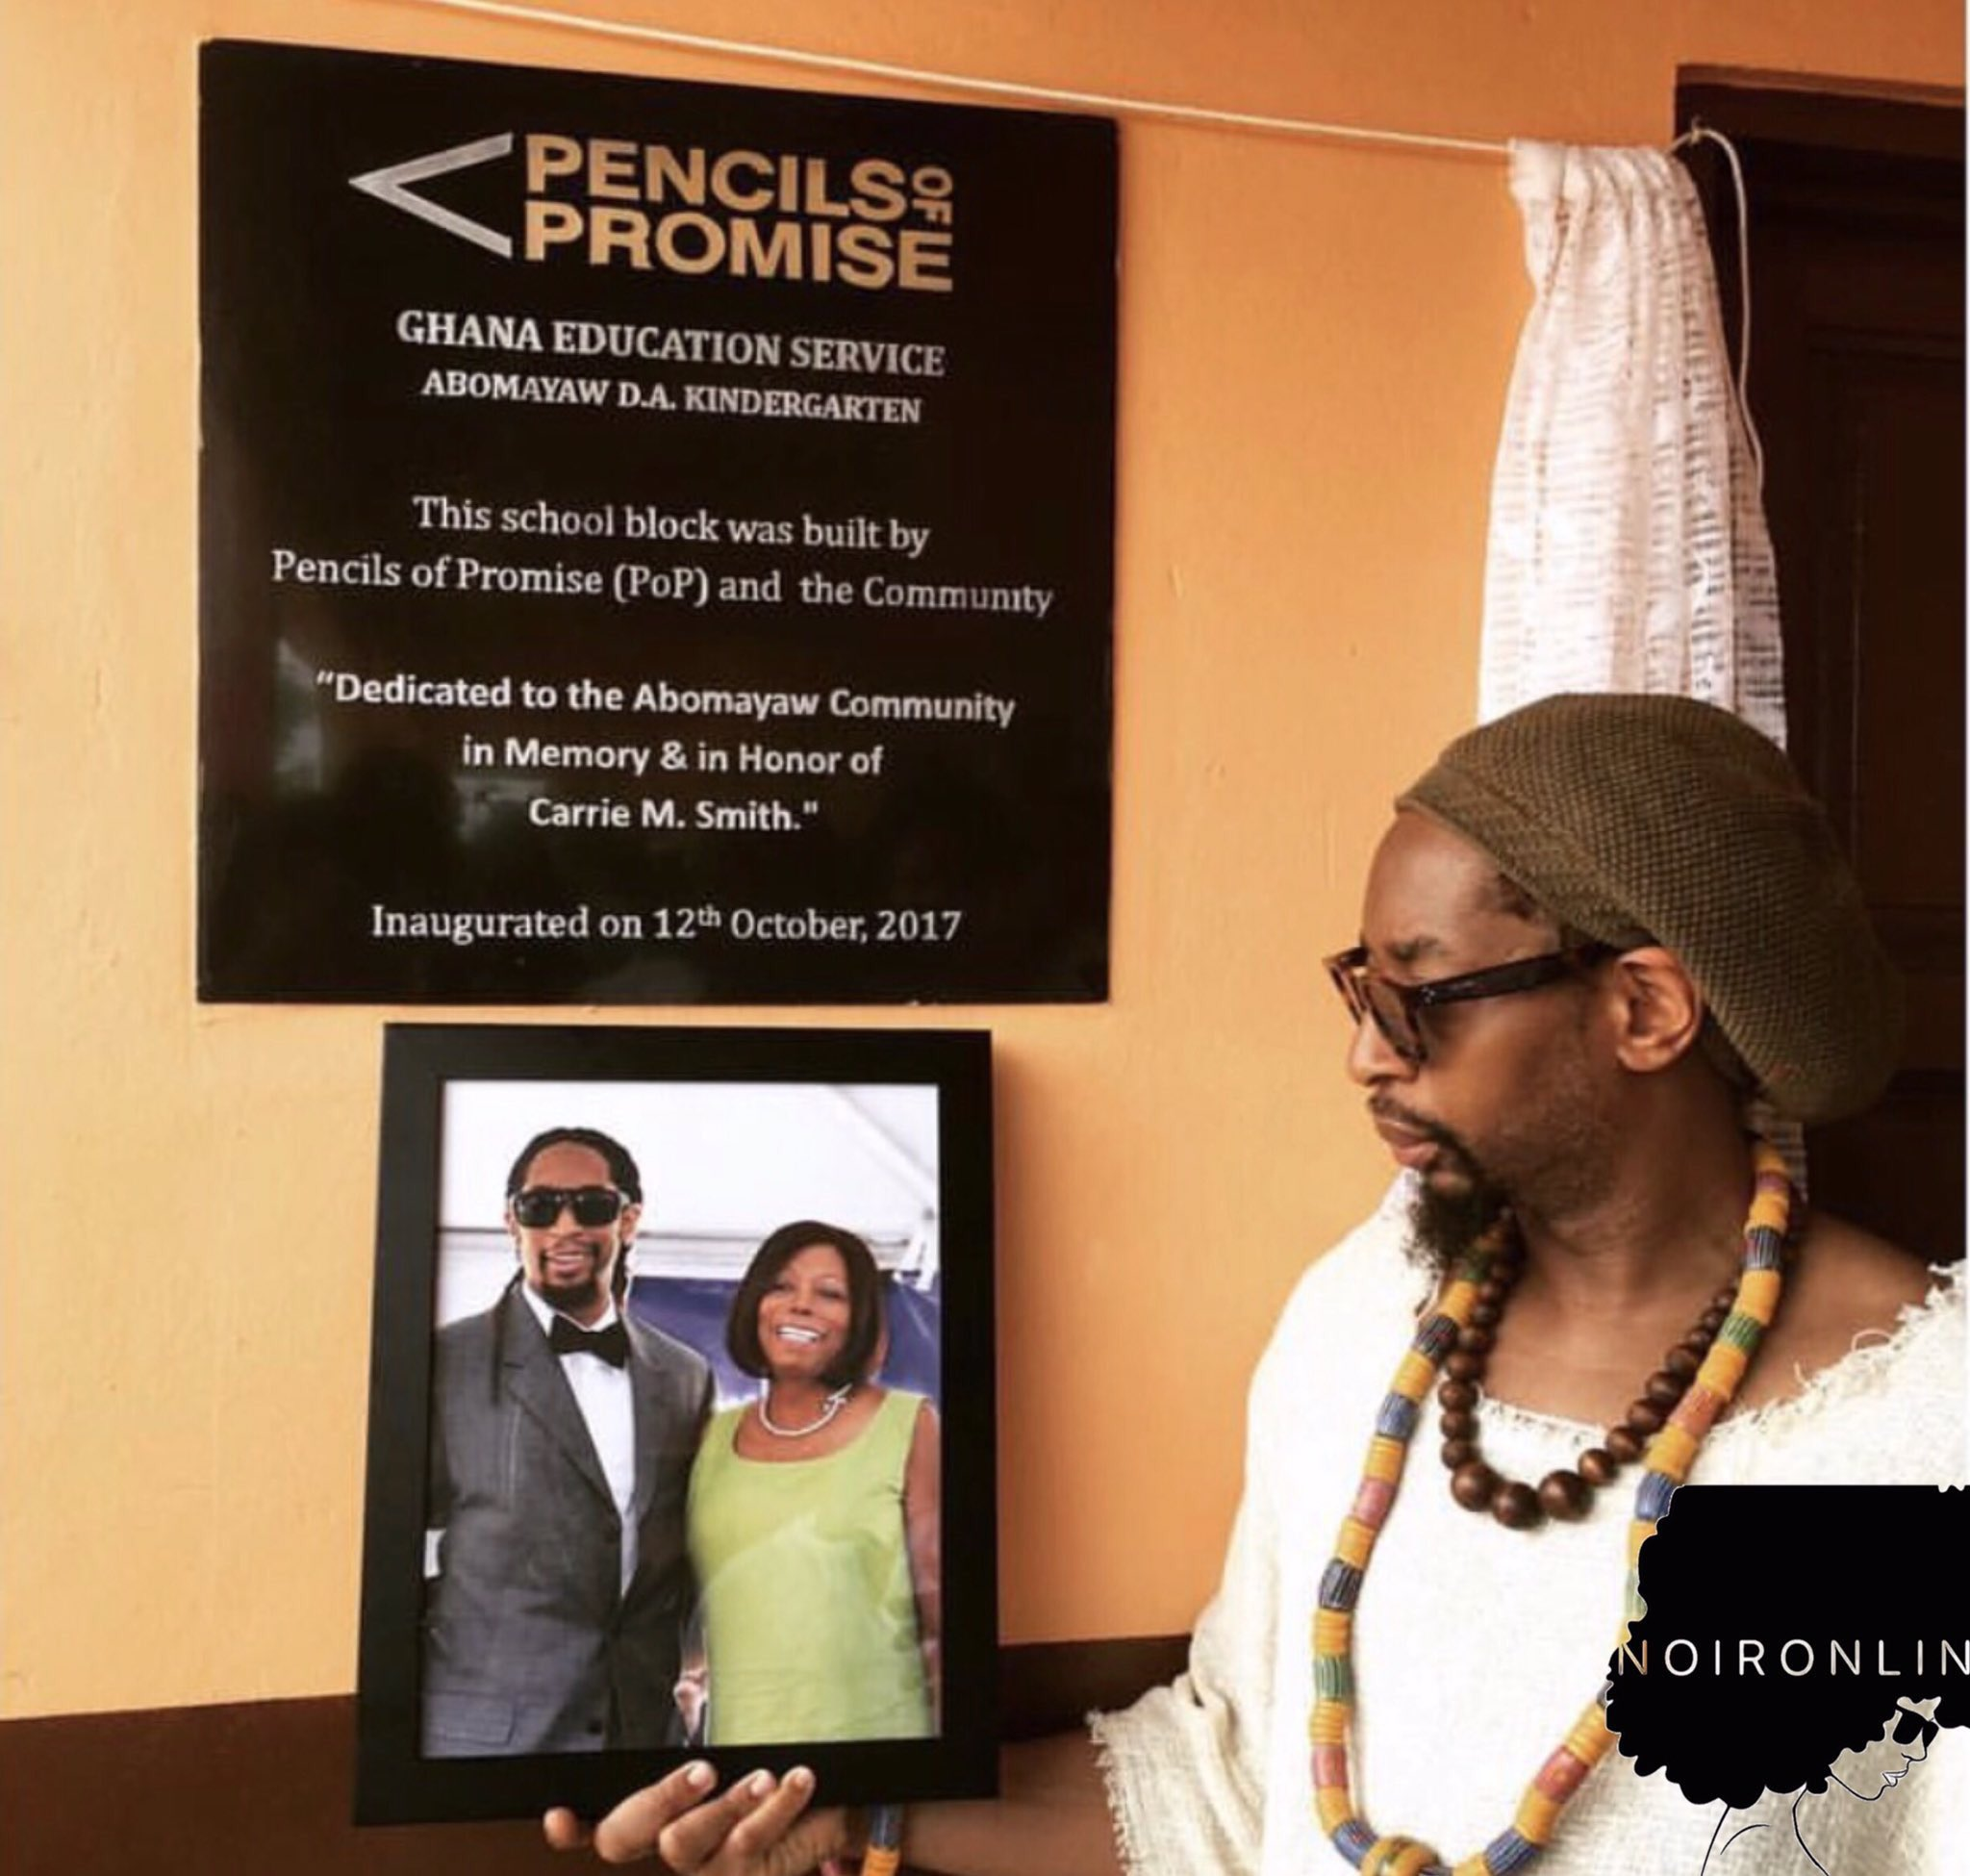 Lil Jon Has Just Opened A Primary School Within The West African Nation Of Ghana This Past Weekend https://t.co/NZSbjhje4u